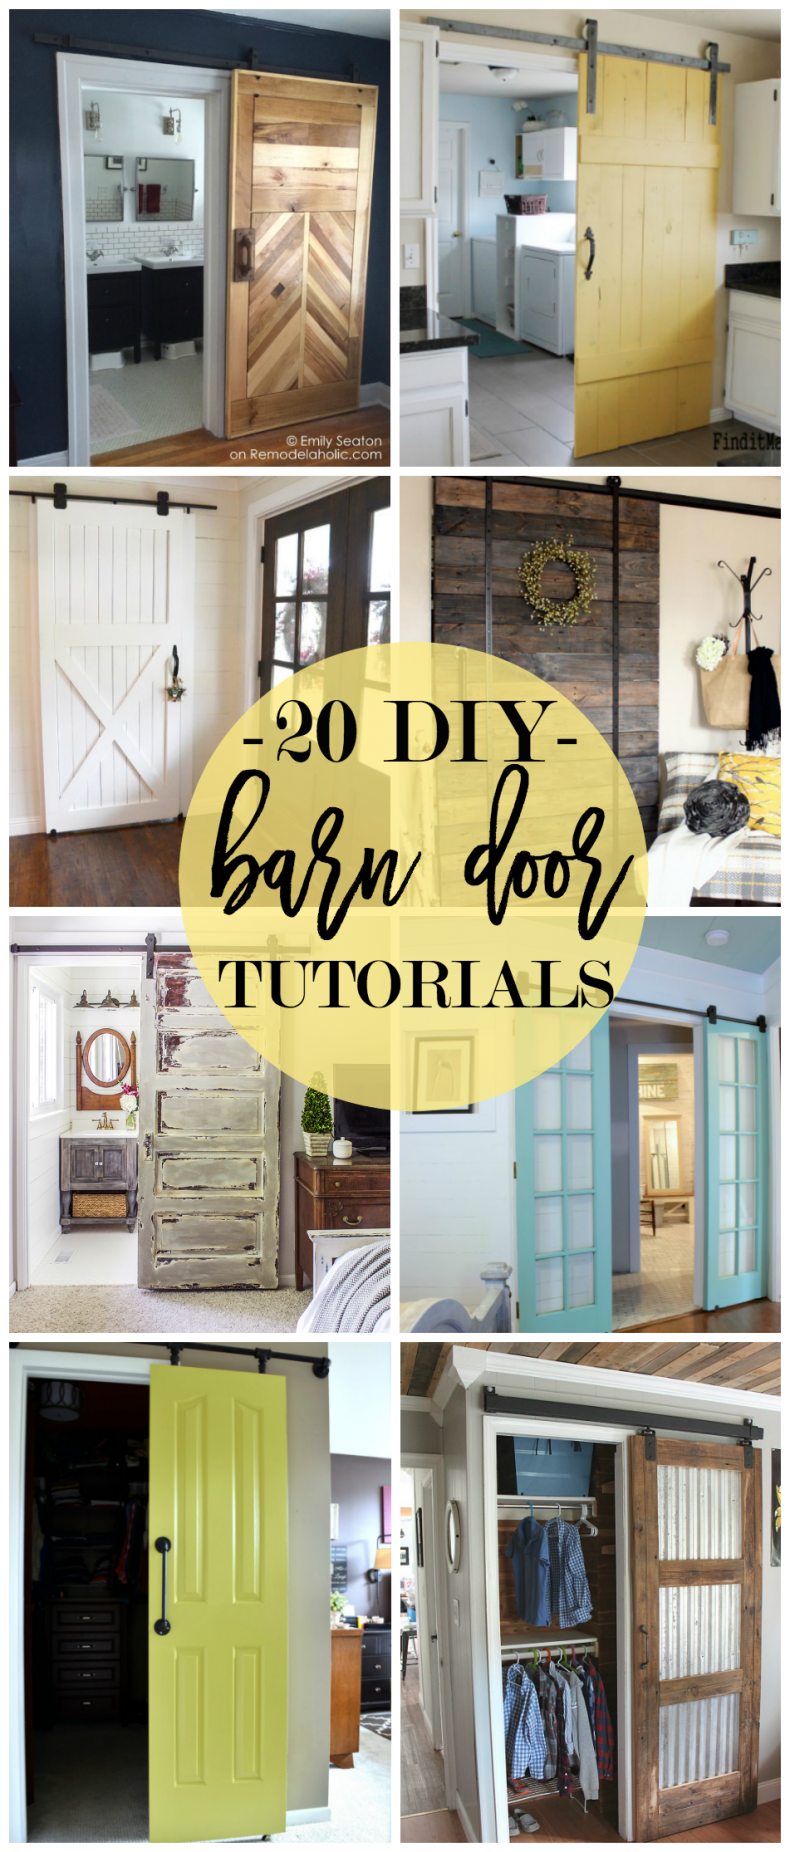 Barn Door For Kitchen 20 Diy Barn Door Tutorials